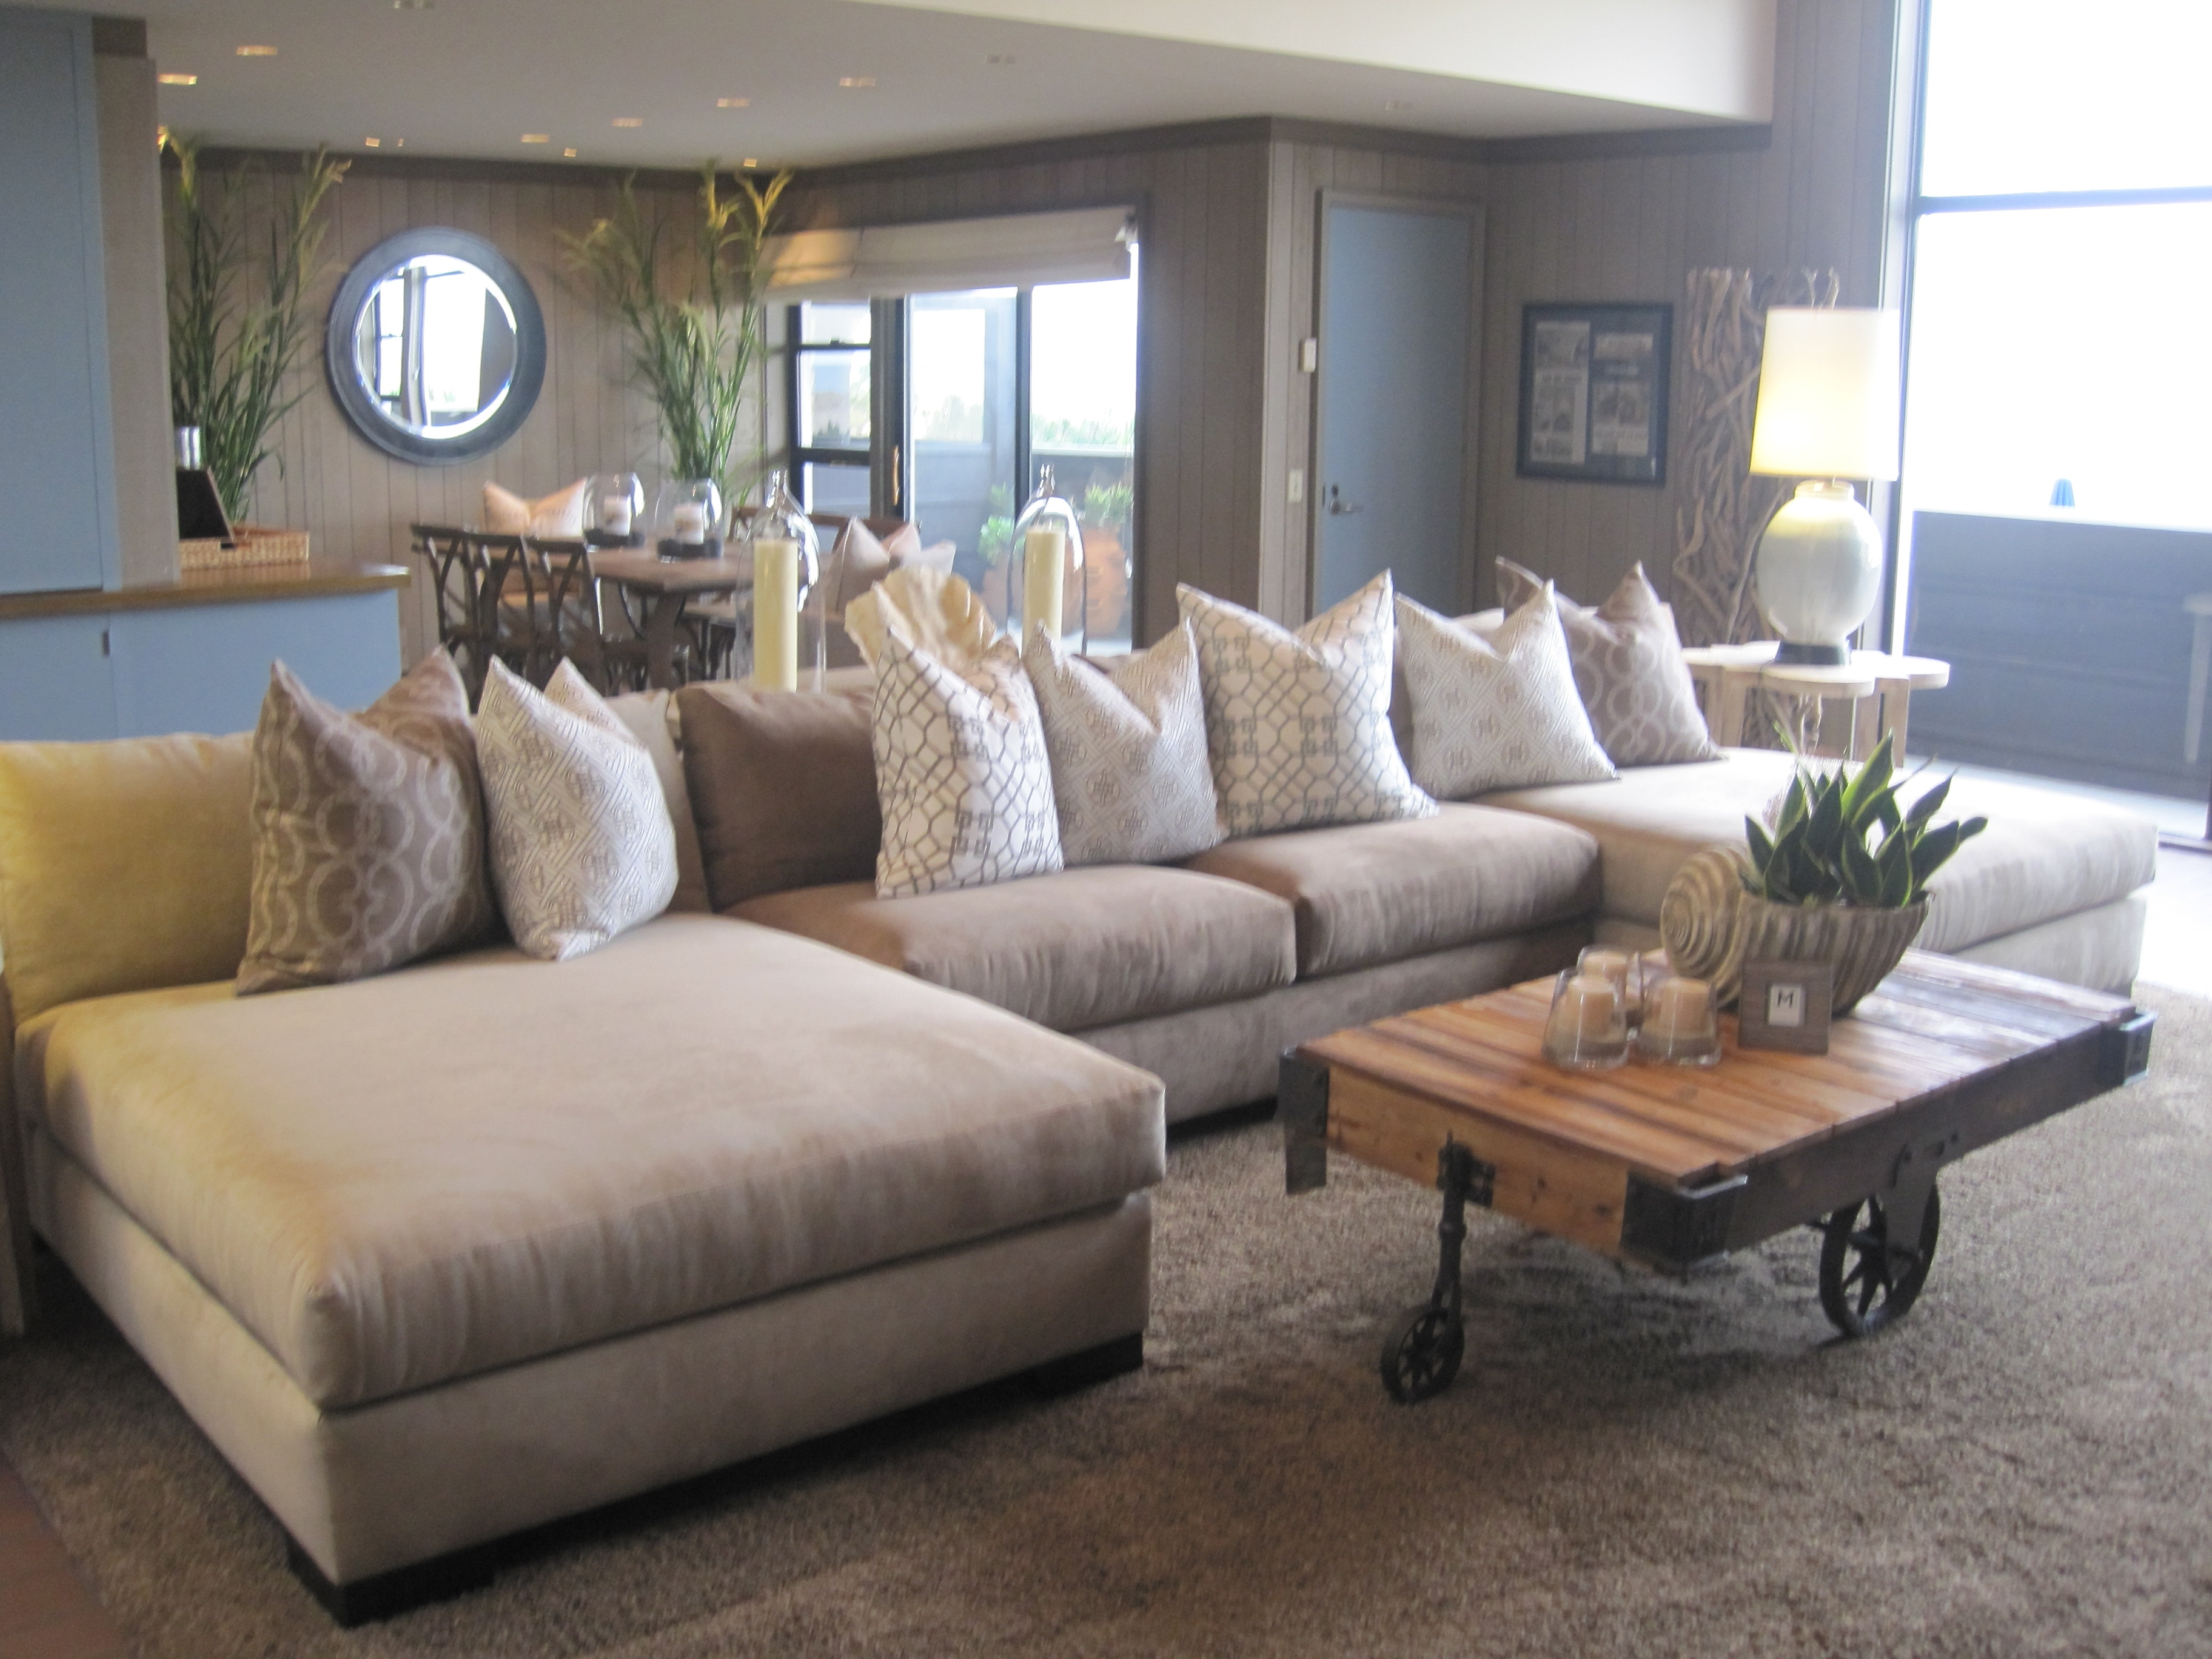 Oversized Sectional Sofas In 2017 Chaise Lounges Double Sectional Sofa With Oversized Ottoman Ideas (View 7 of 15)